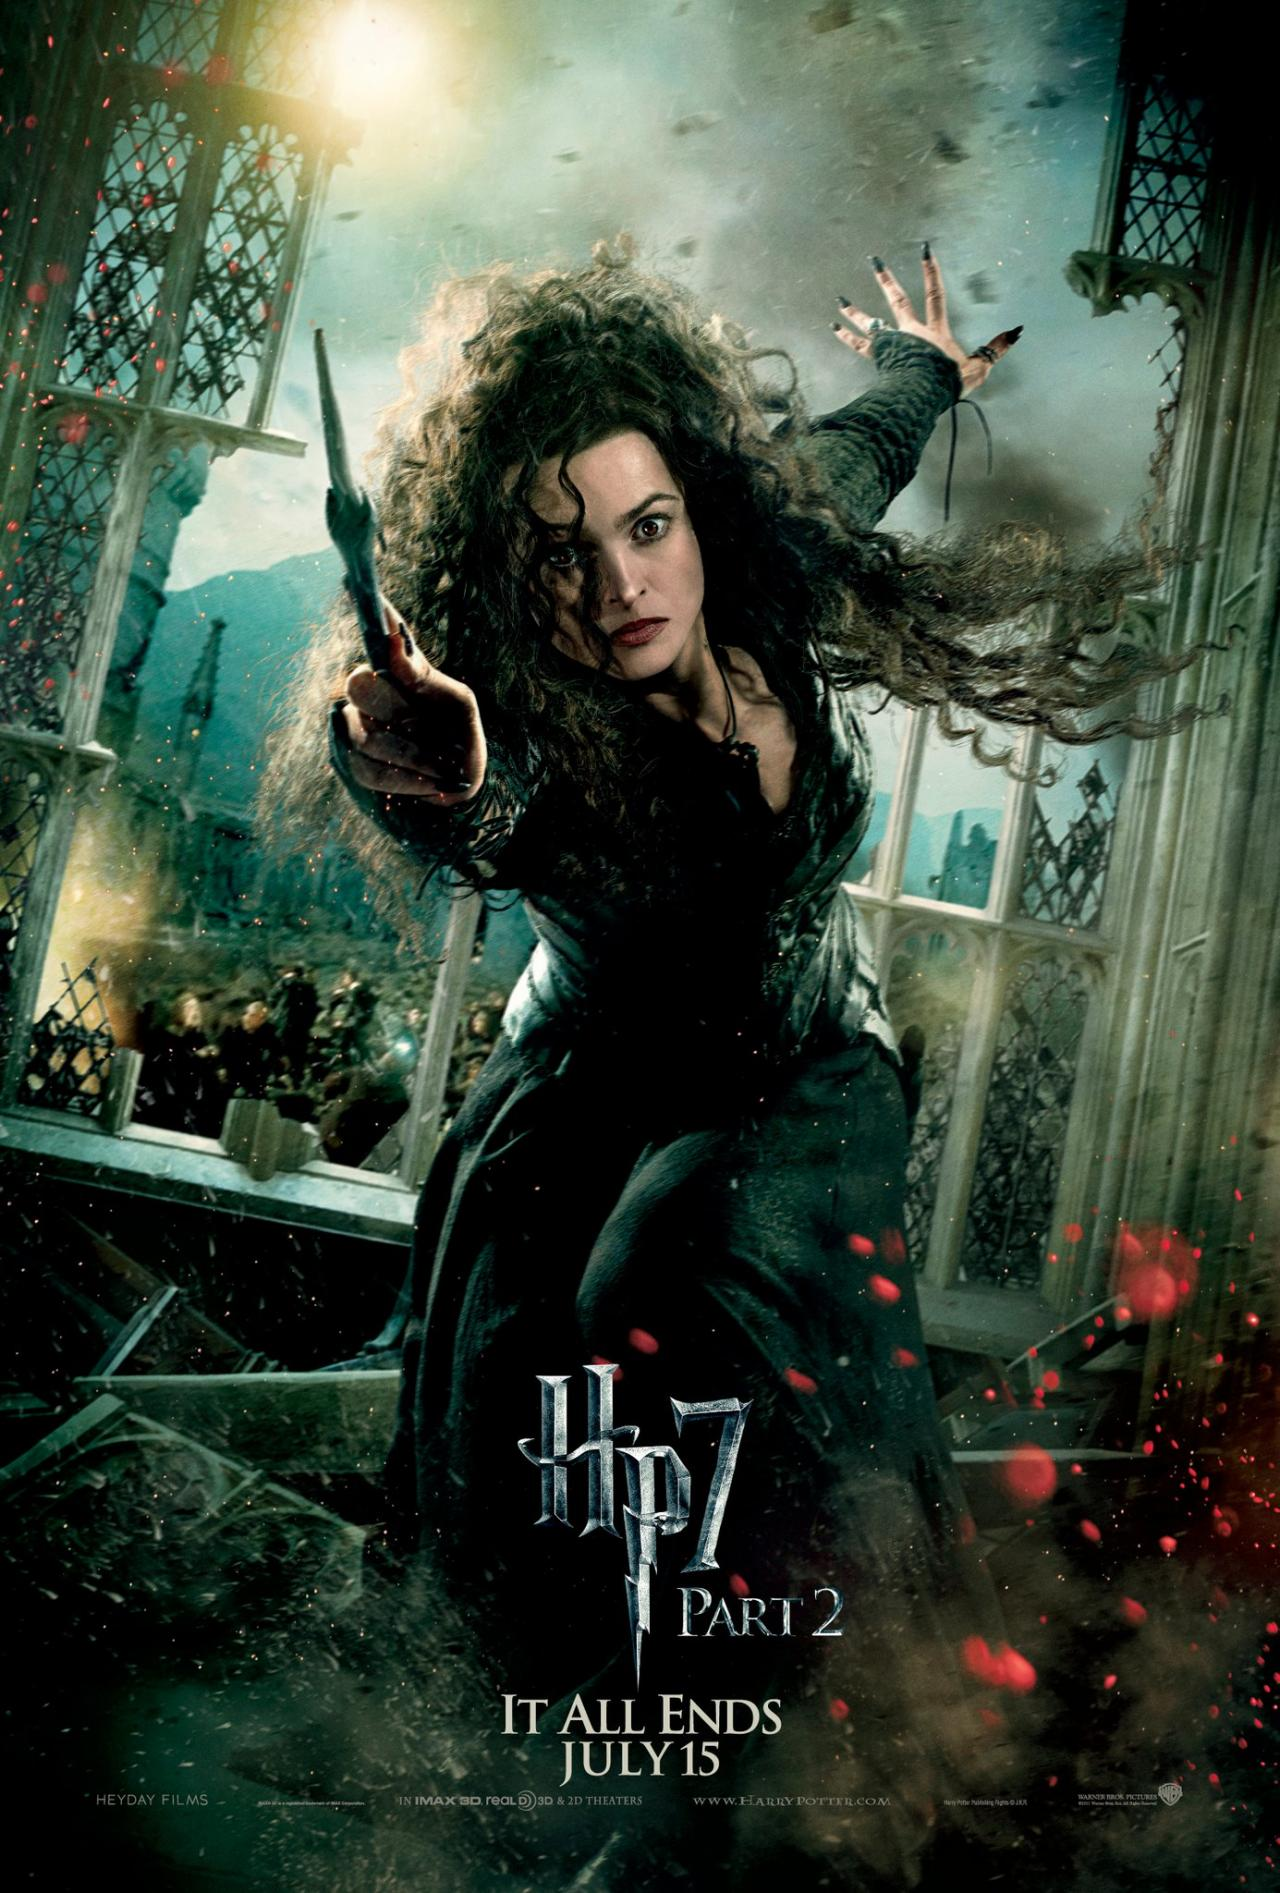 Wallpaper Harry Potter HP7 Part 2 poster - Bellatrix